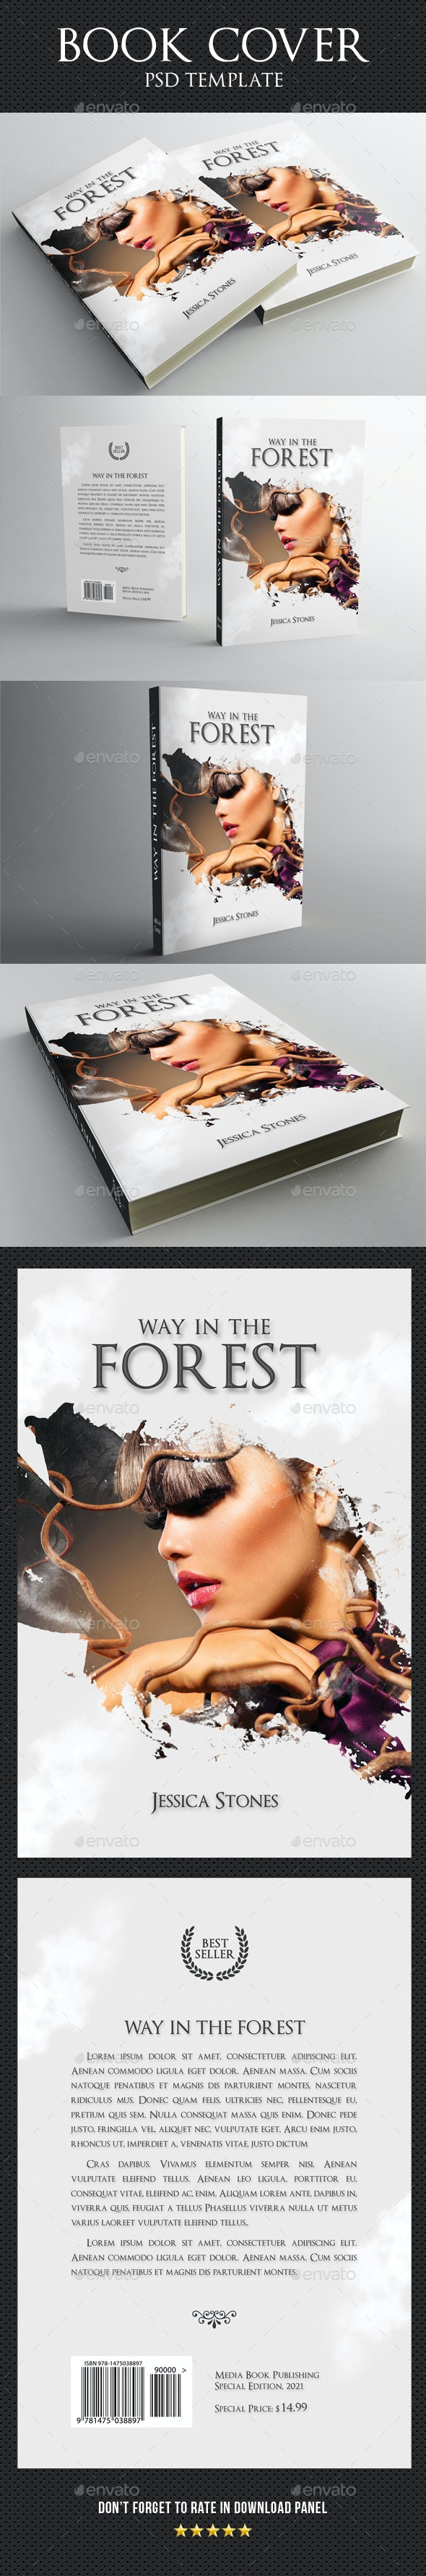 Book Cover Template 74 - Miscellaneous Print Templates